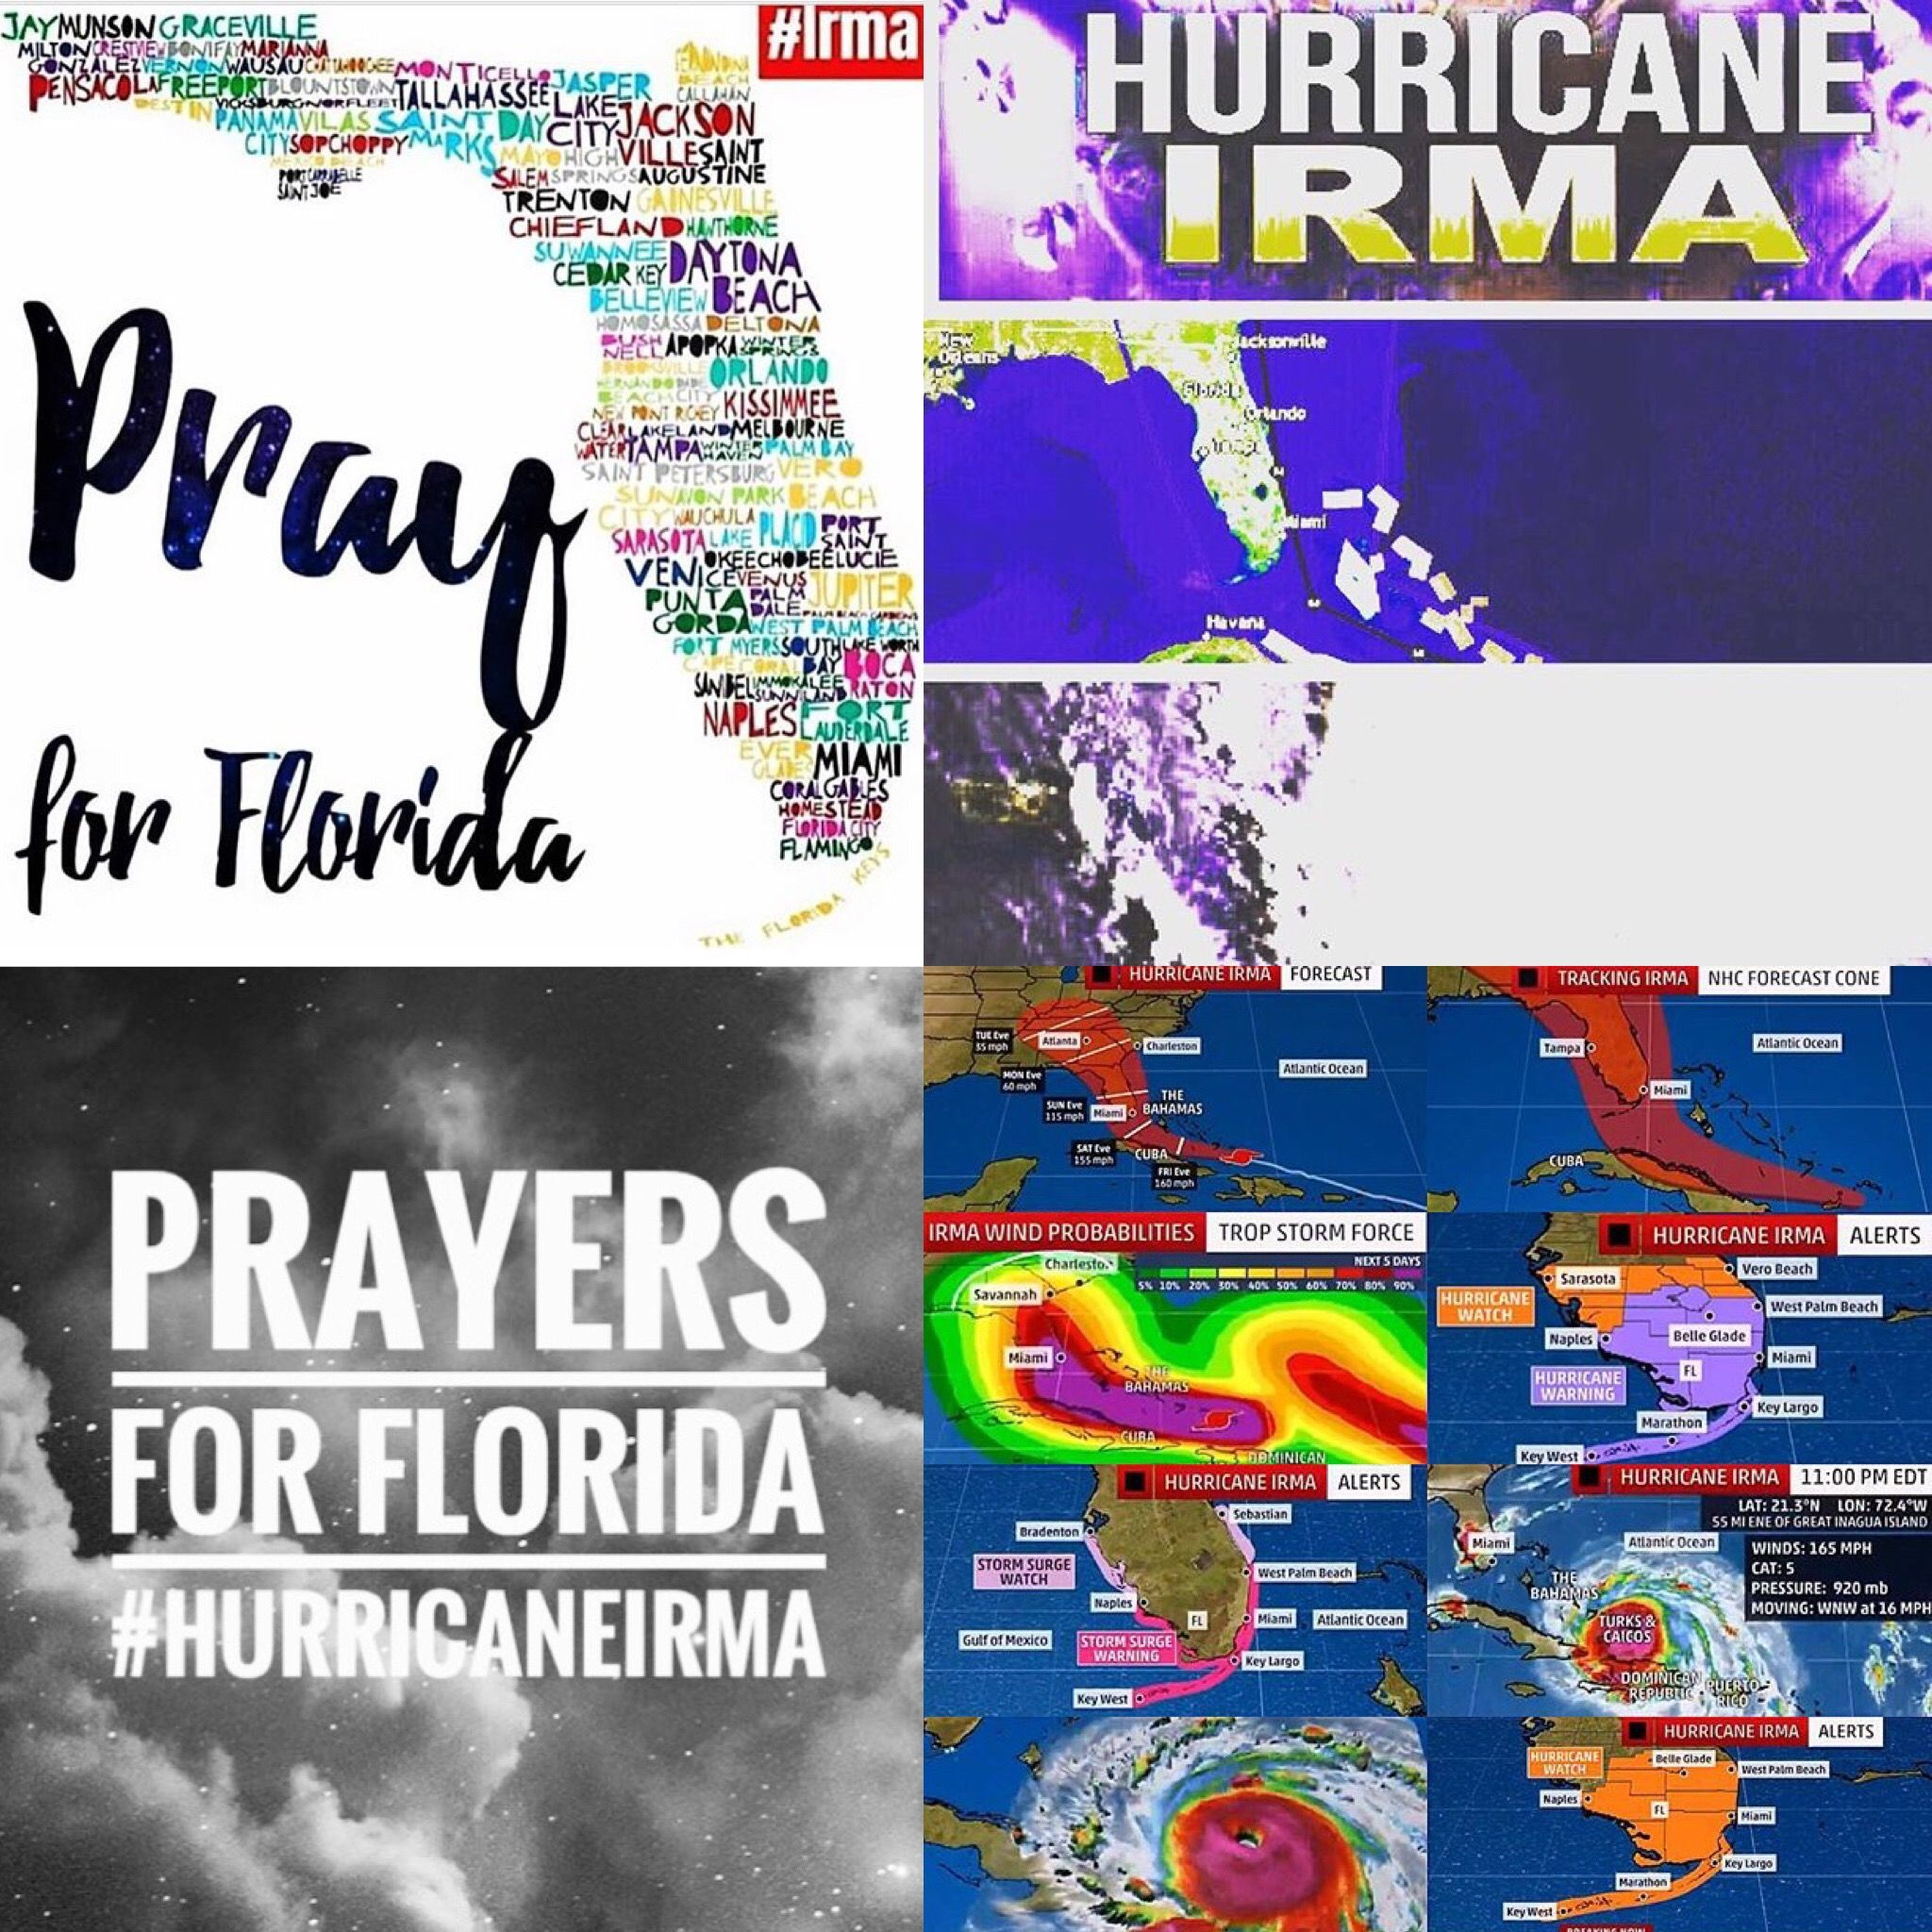 Warning September 8 2017 Prayers The National Hurricane Center Has Issued Hurricane And Storm Surge Warni National Hurricane Center Bonita Beach Florida Bay